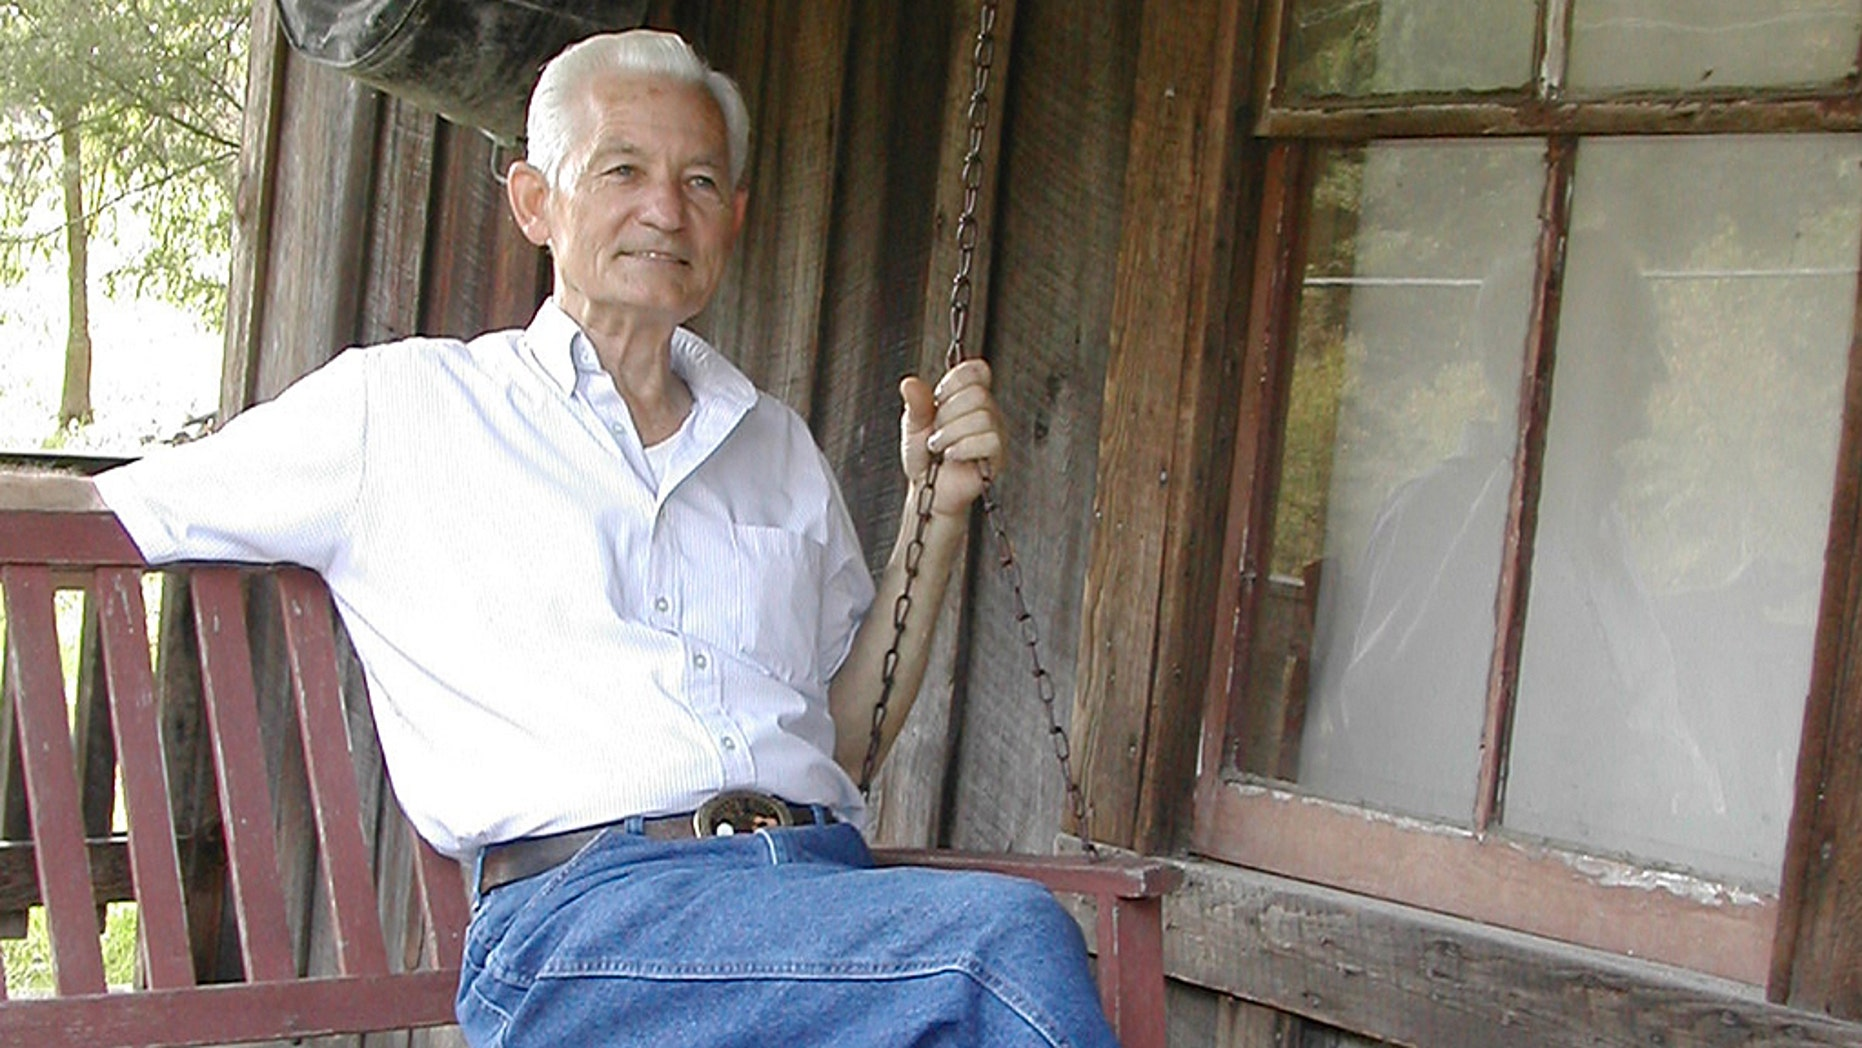 Herman Webb, brother of country music star Loretta Lynn, sits on the porch of the home they grew up in at Butcher Hollow, outside Van Lear, Ky., on Oct. 3, 2002.